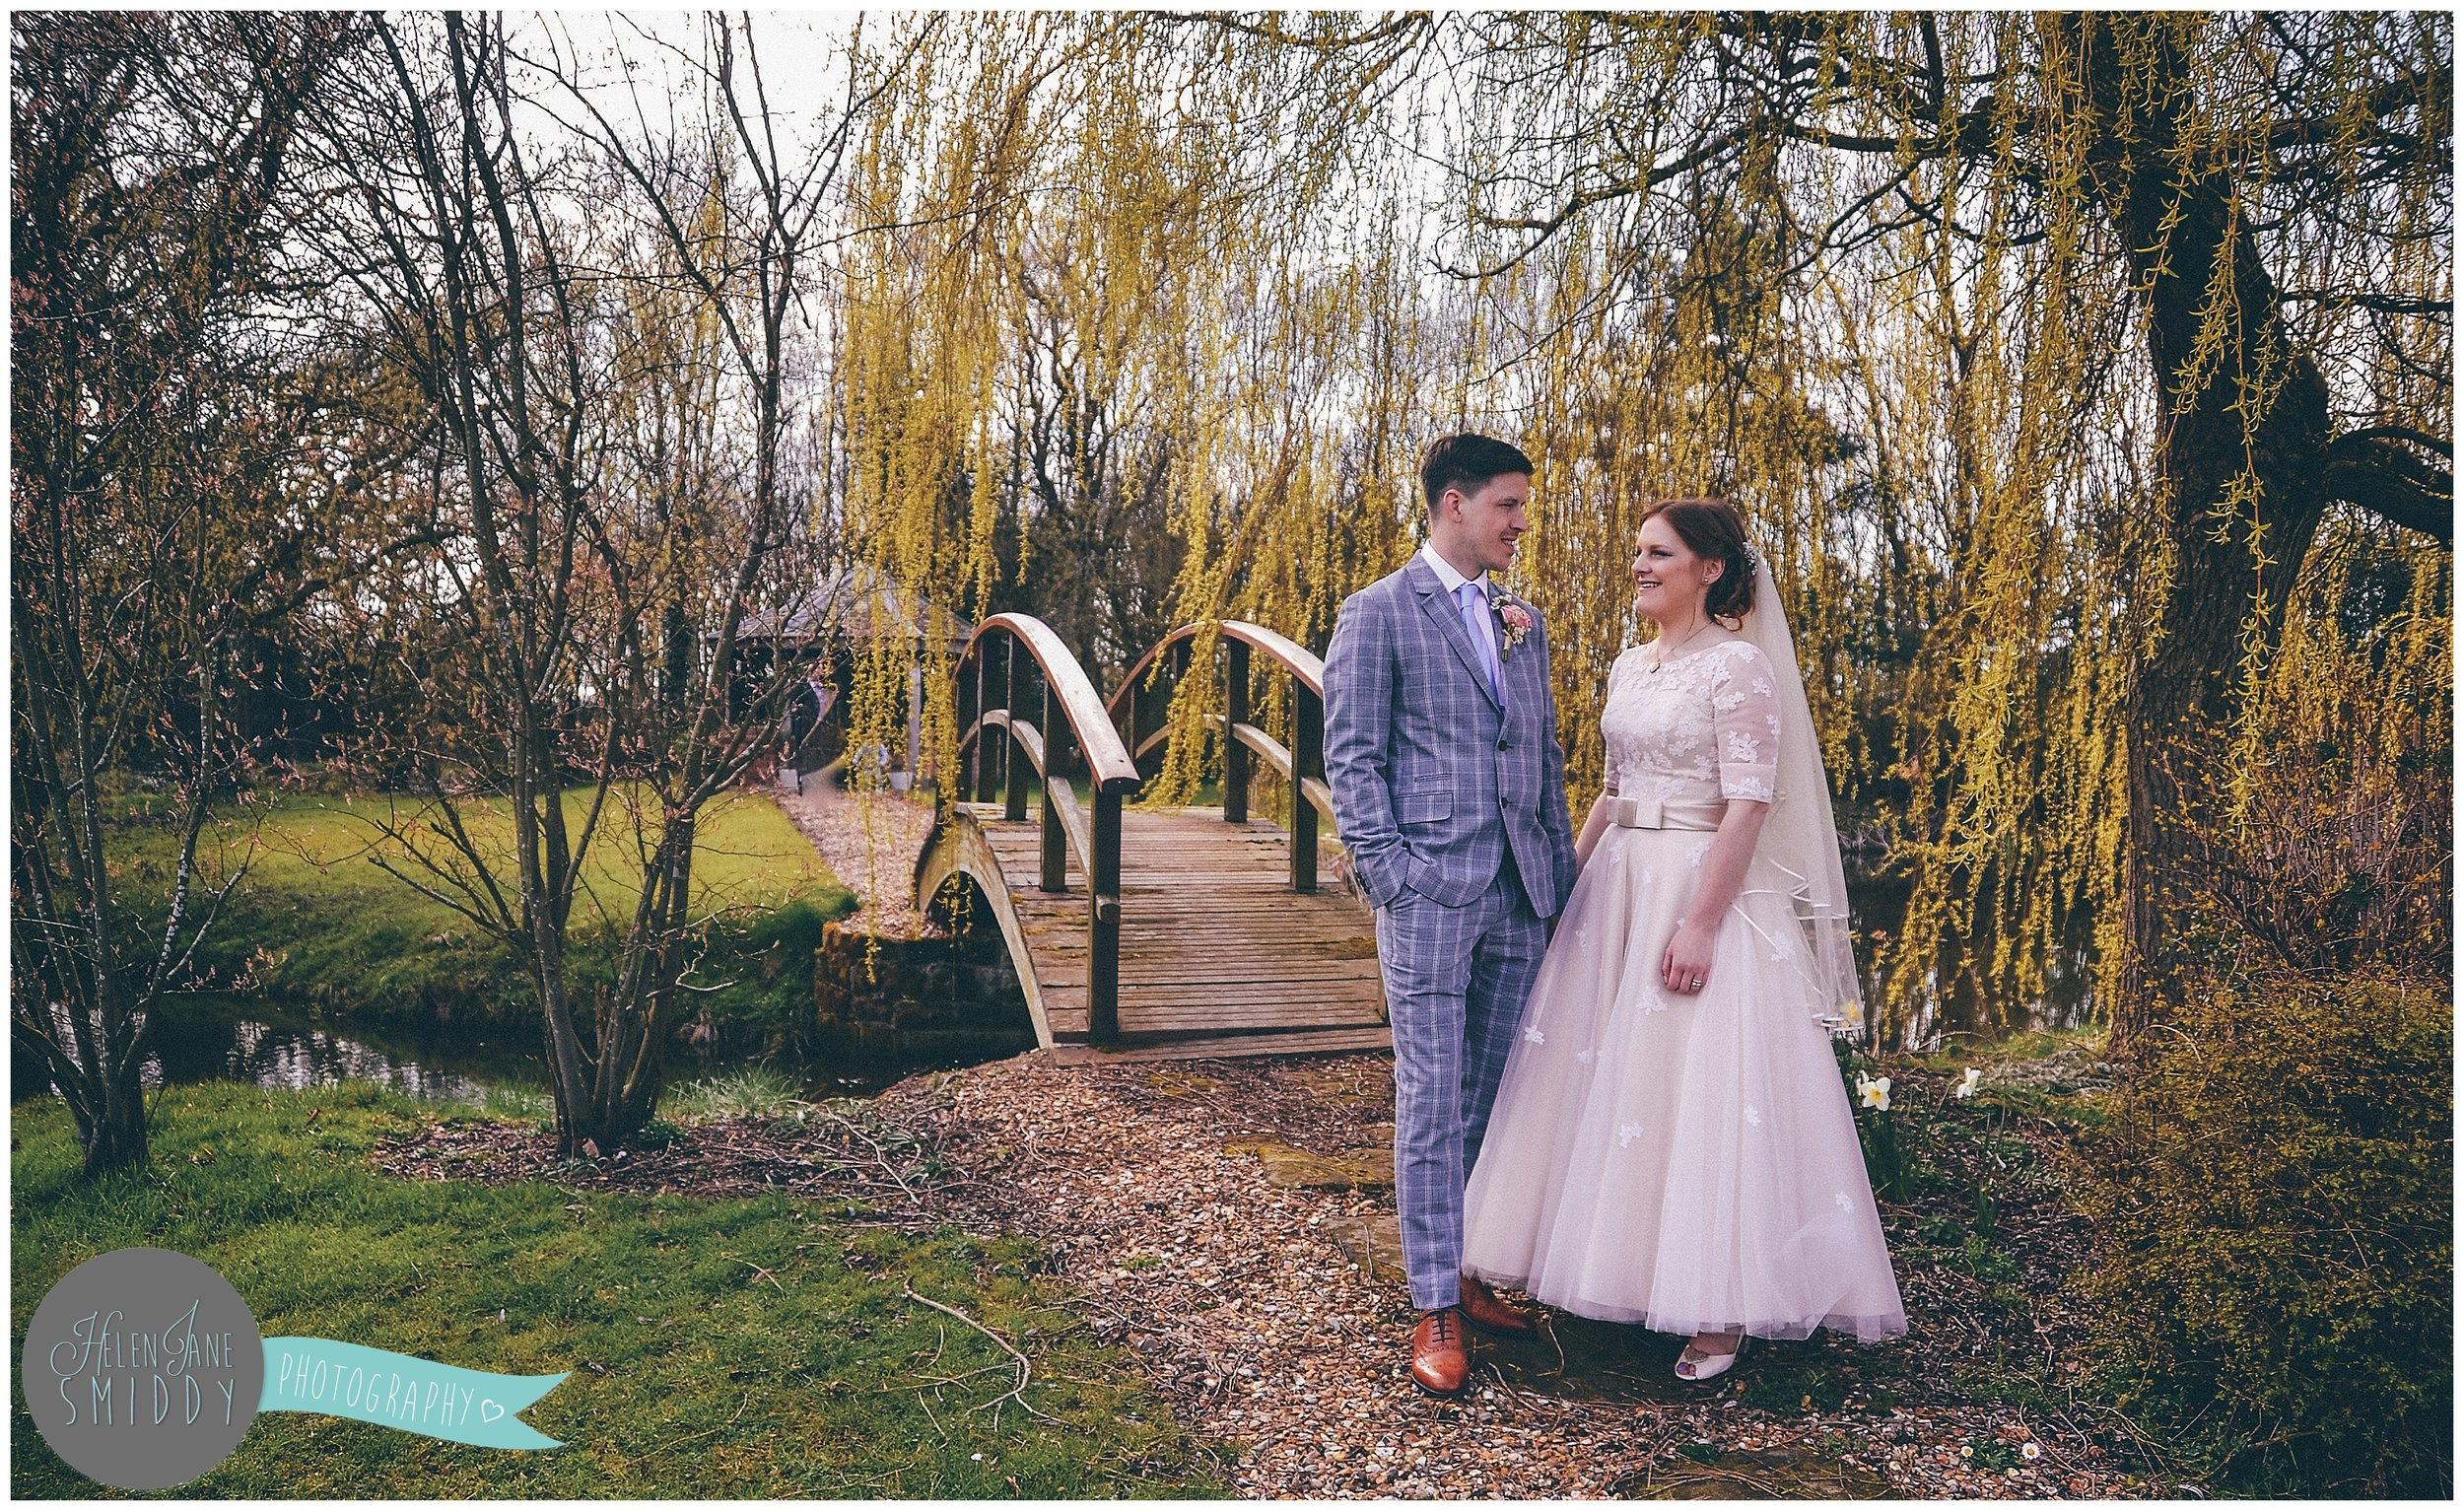 The gorgeous bride and groom stood smiling together in front of the weeping willow.